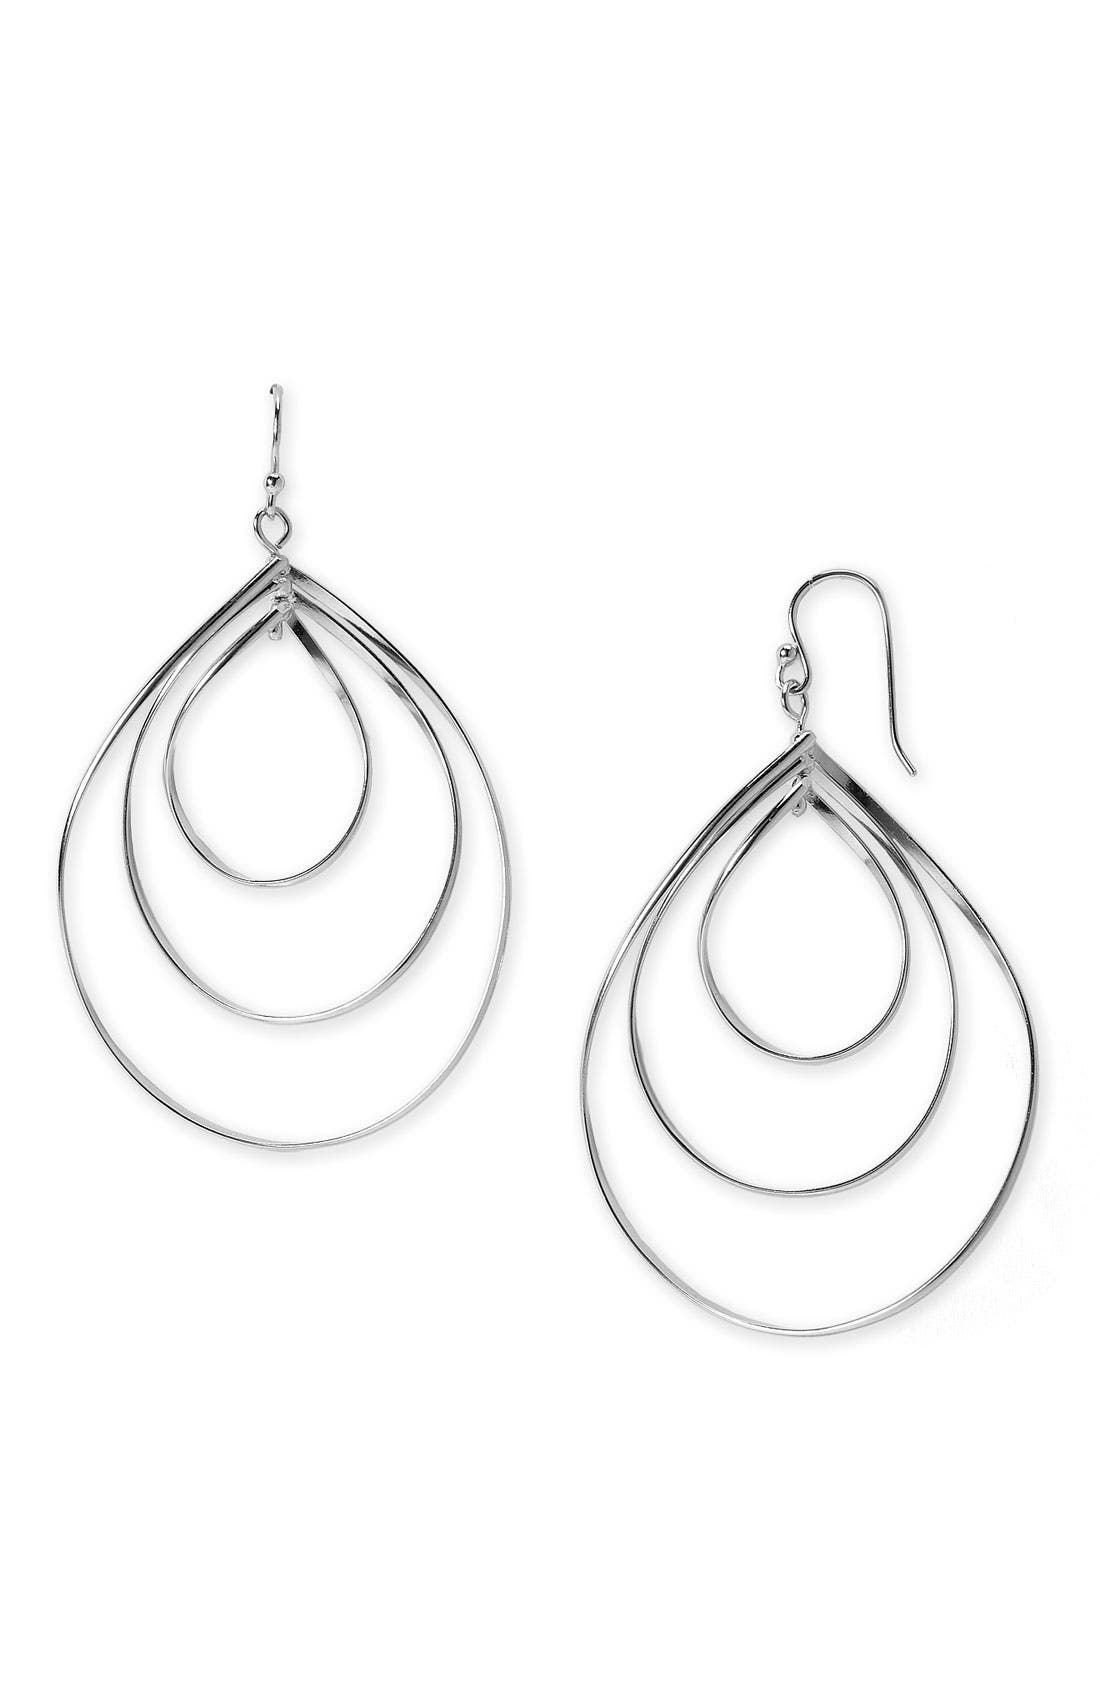 Main Image - Argento Vivo Triple Teardrop Earrings